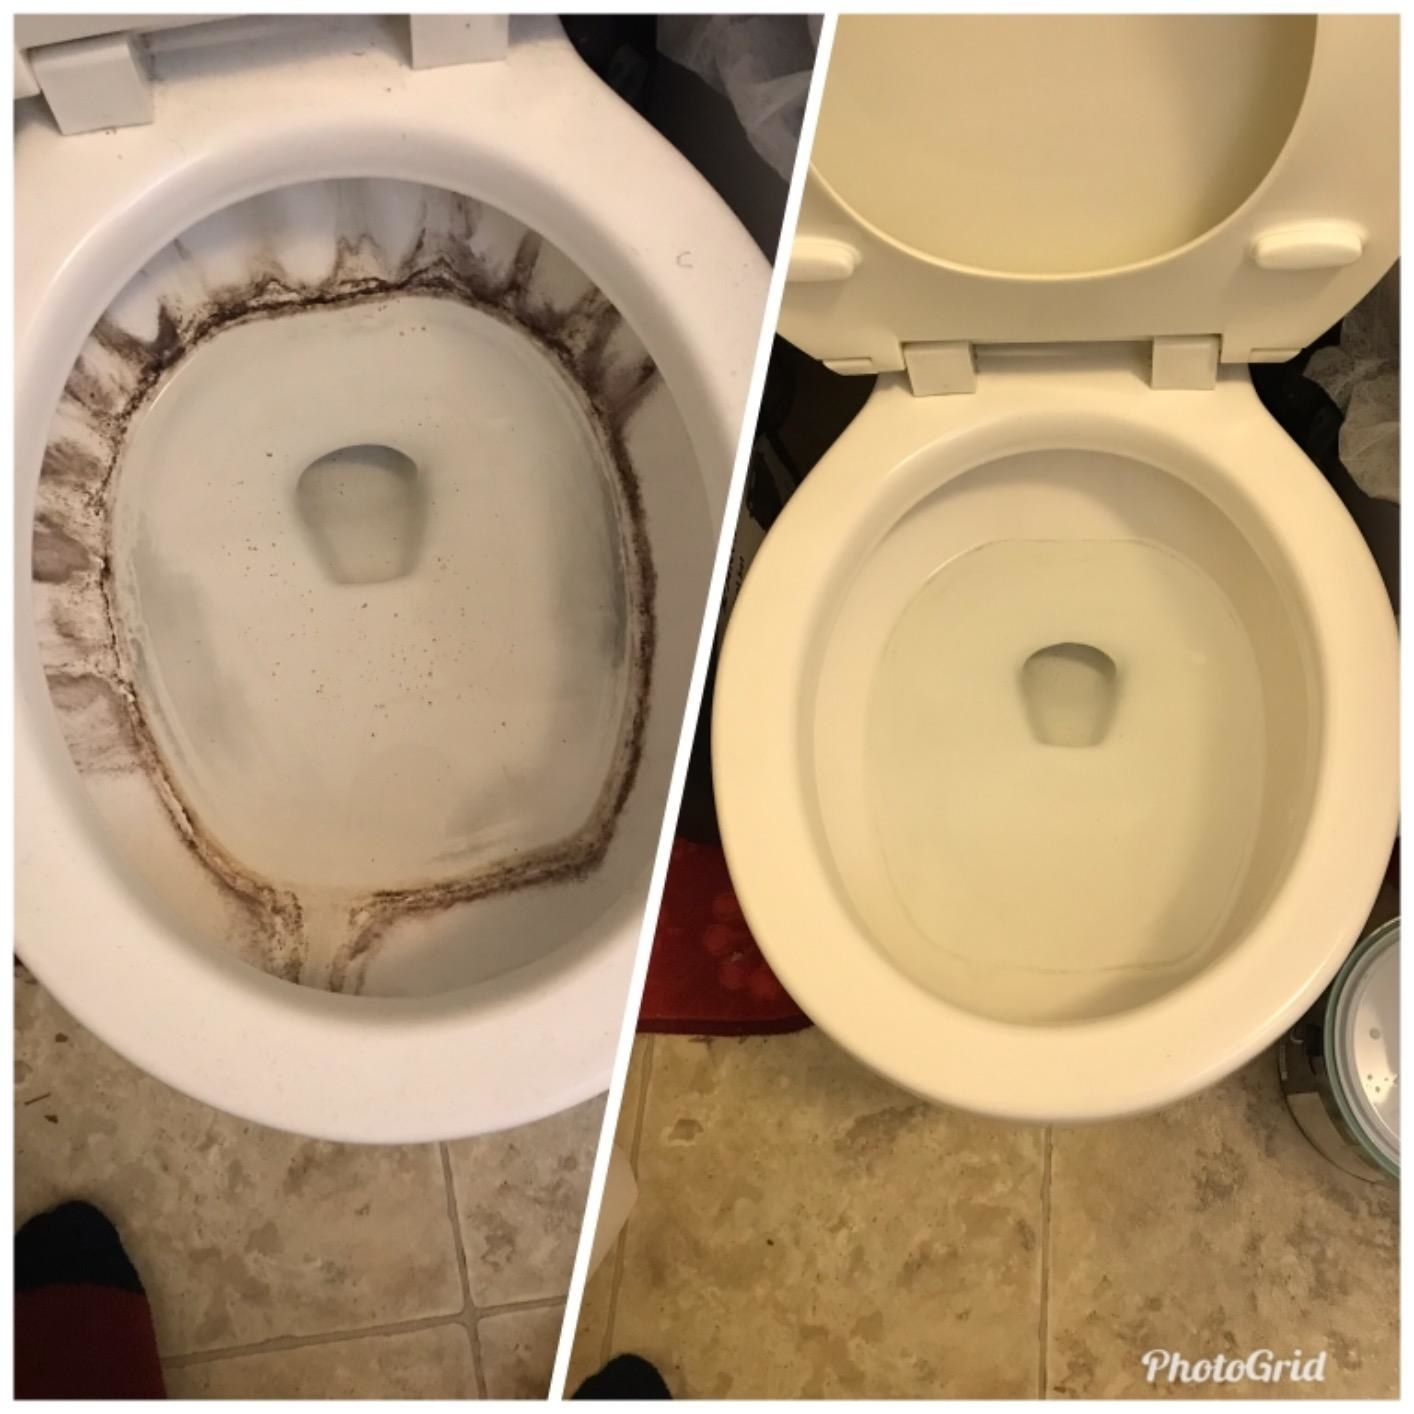 reviewer's before-and-after photo of a toilet with brown stains in it compared to the same toilet with all of the stains gone